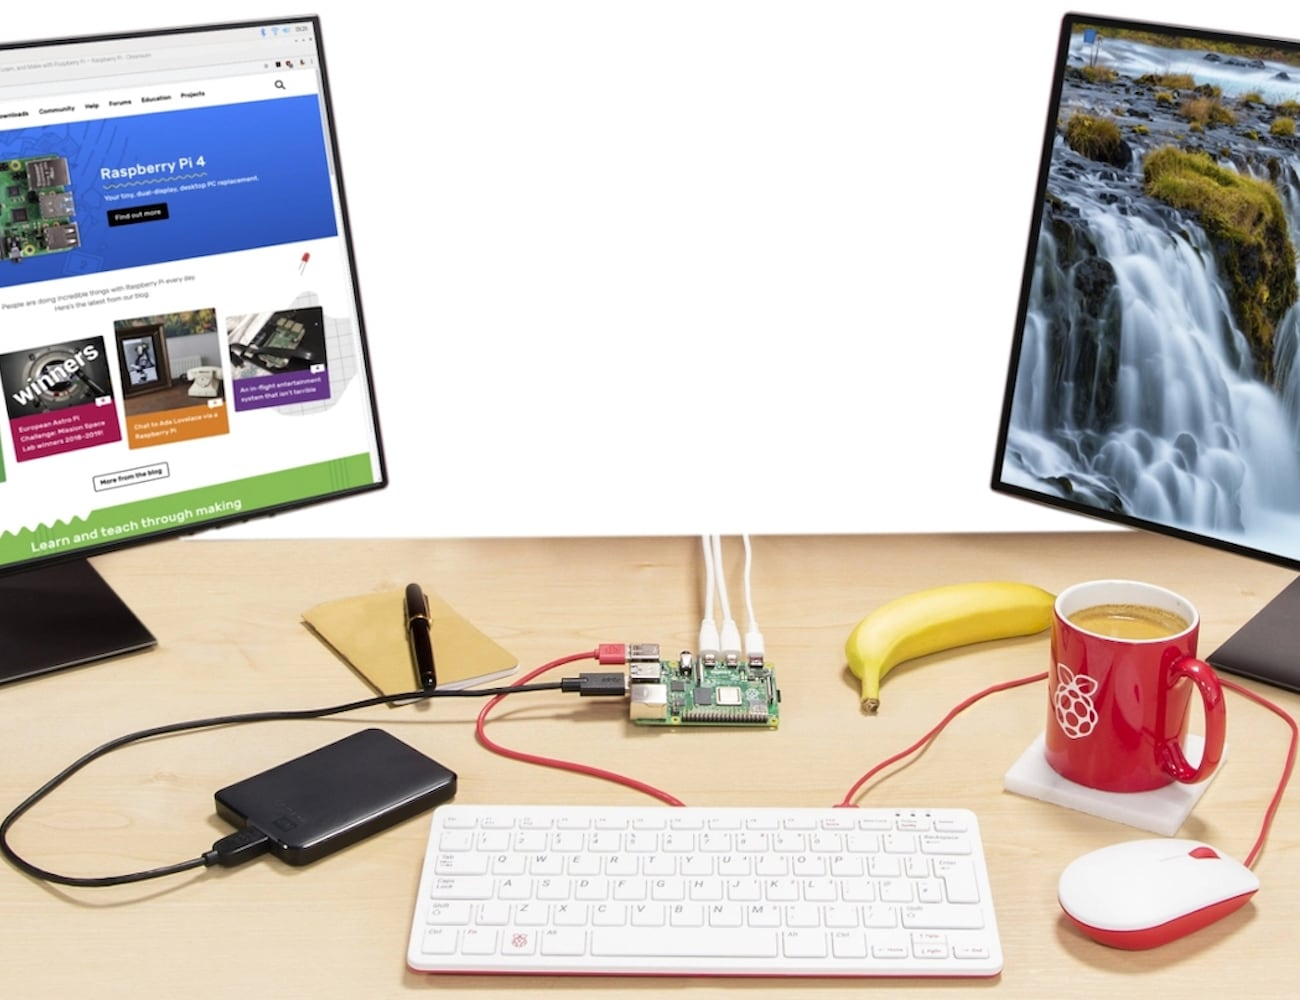 Raspberry Pi 4 Miniature Single Board Computer lets you run two monitors at once